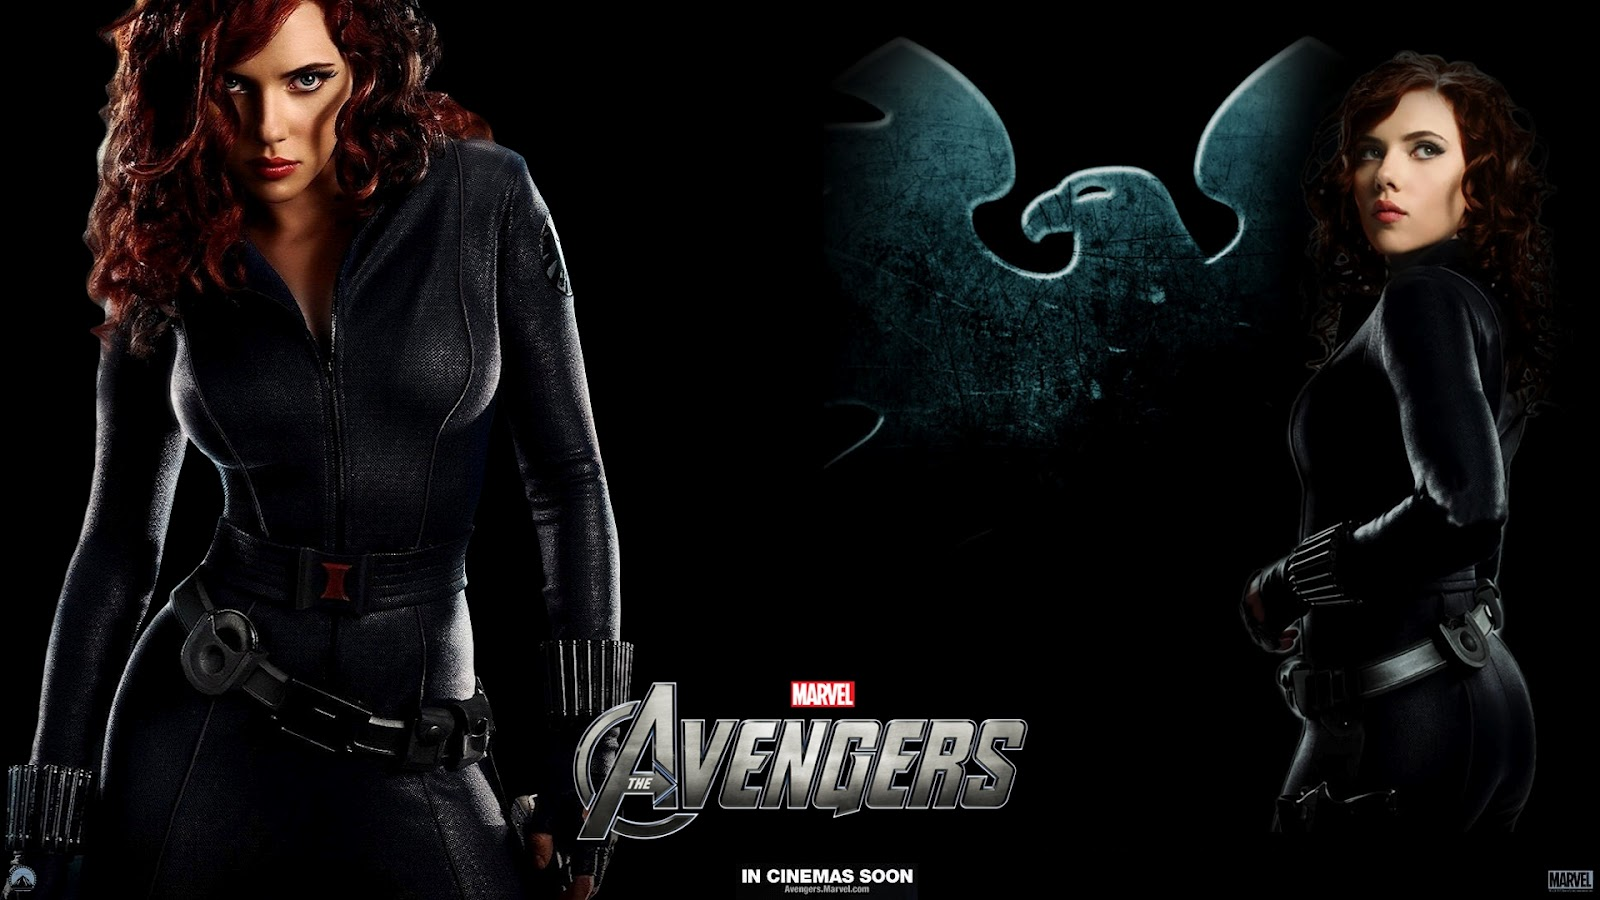 http://1.bp.blogspot.com/-RfvDdTBbDA4/UBChwA9BS2I/AAAAAAAABuE/DSKmCeBF1bg/s1600/the_avengers___black_widow_by_askilletpanhead-d4pa1ka.jpg